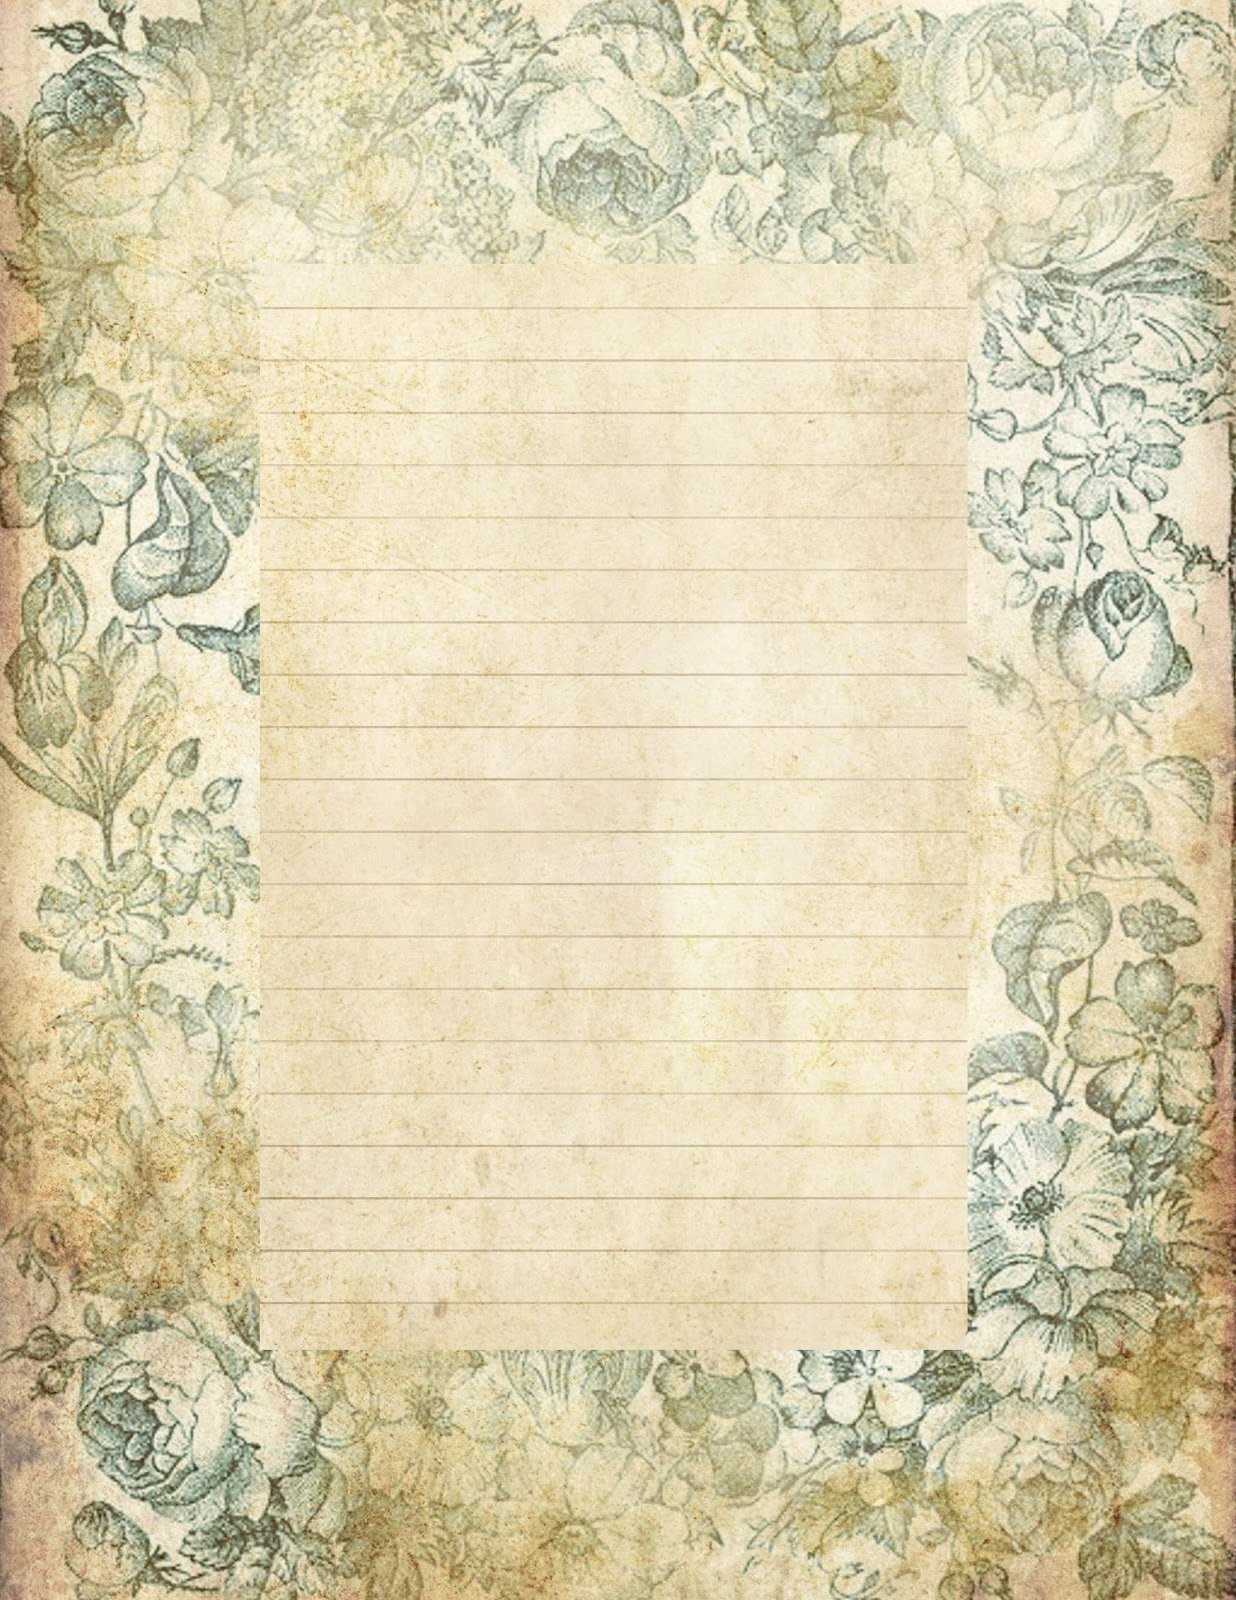 Free Printable Lined Stationery Best Of Love Letter Paper